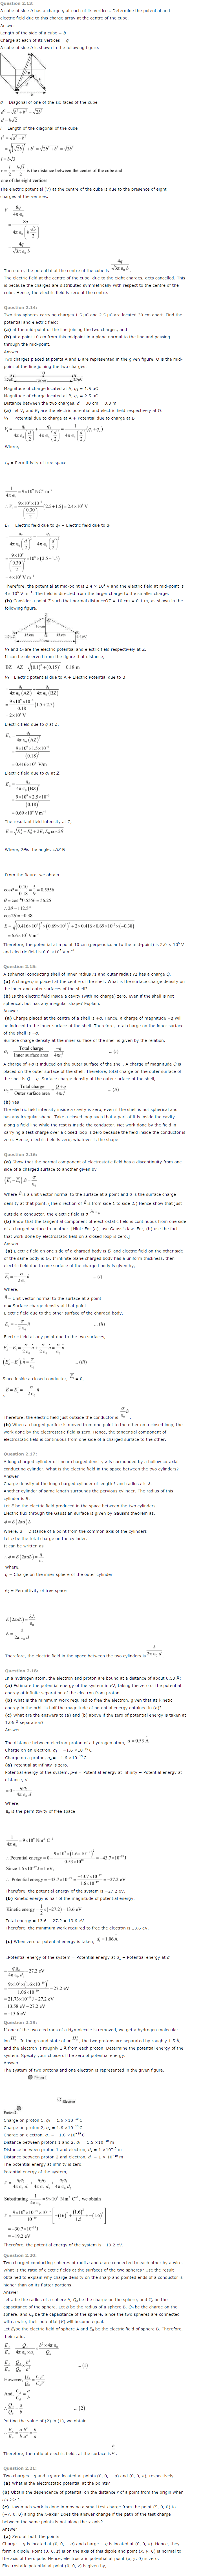 NCERT Solutions for Class 12th Physics Chapter 2   Electrostatic Potential And Capacitance